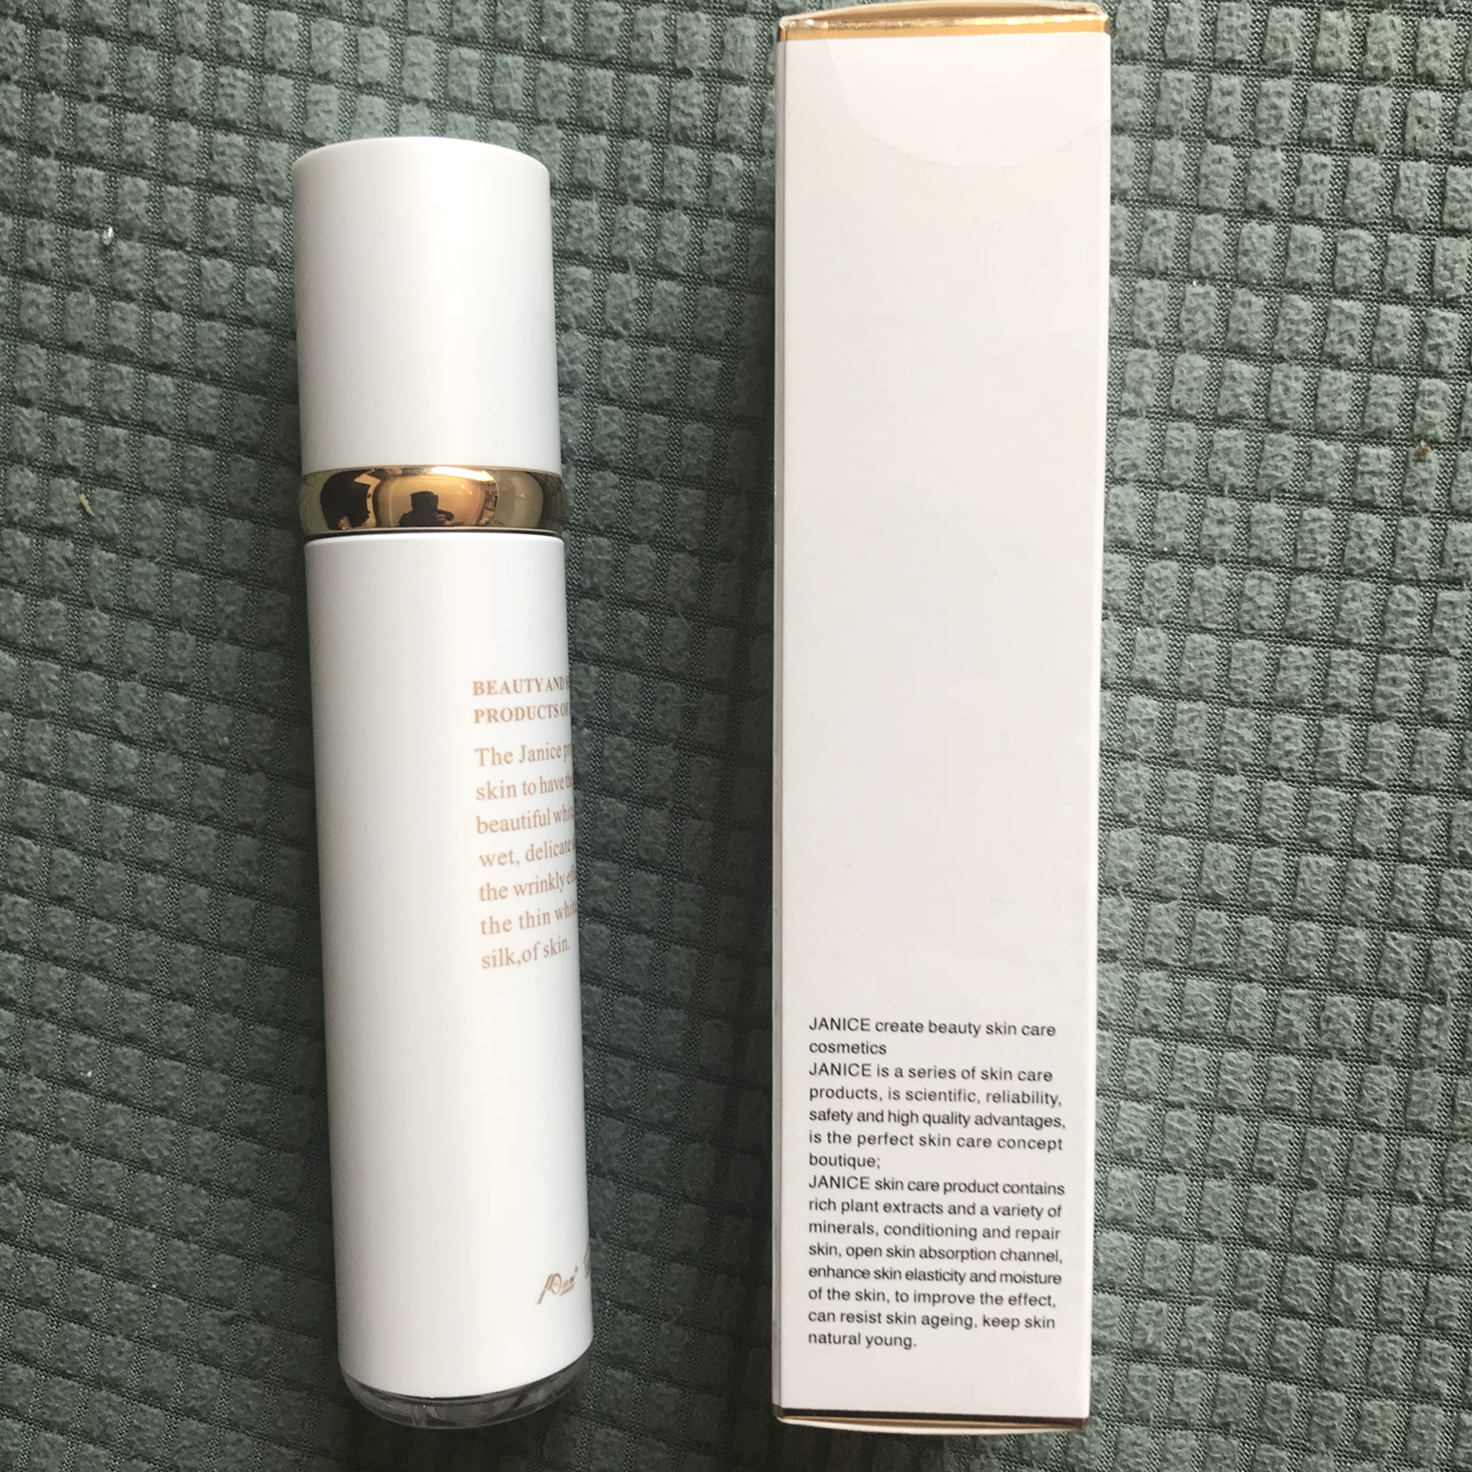 [beauty parlour special sunscreen lotion] send mask! Over 200 packages